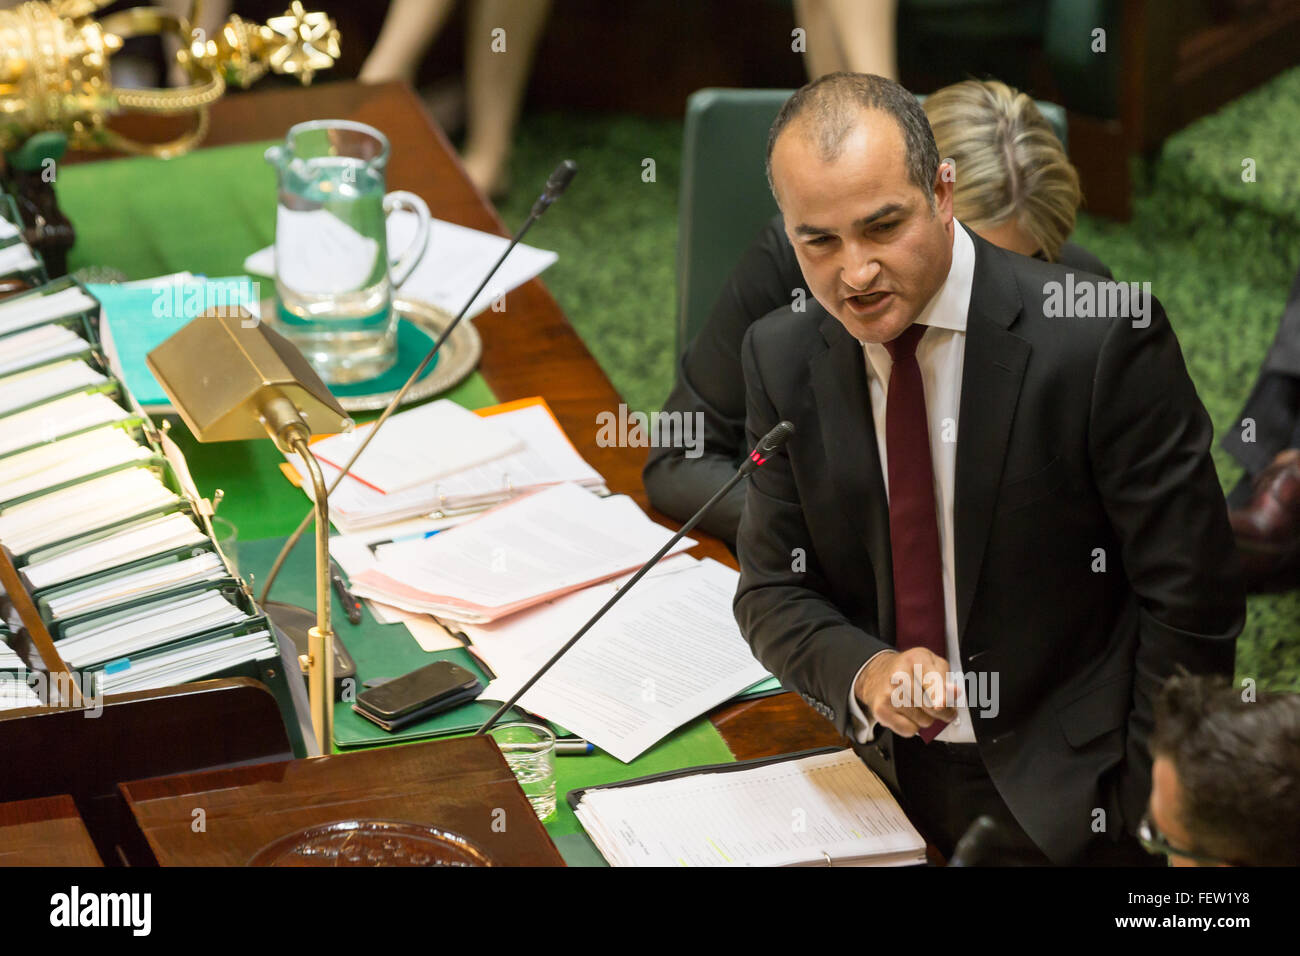 Melbourne, Australia. 9th February, 2016. The Deputy Premier,  Hon. James Merlino, answers questions over the long - Stock Image